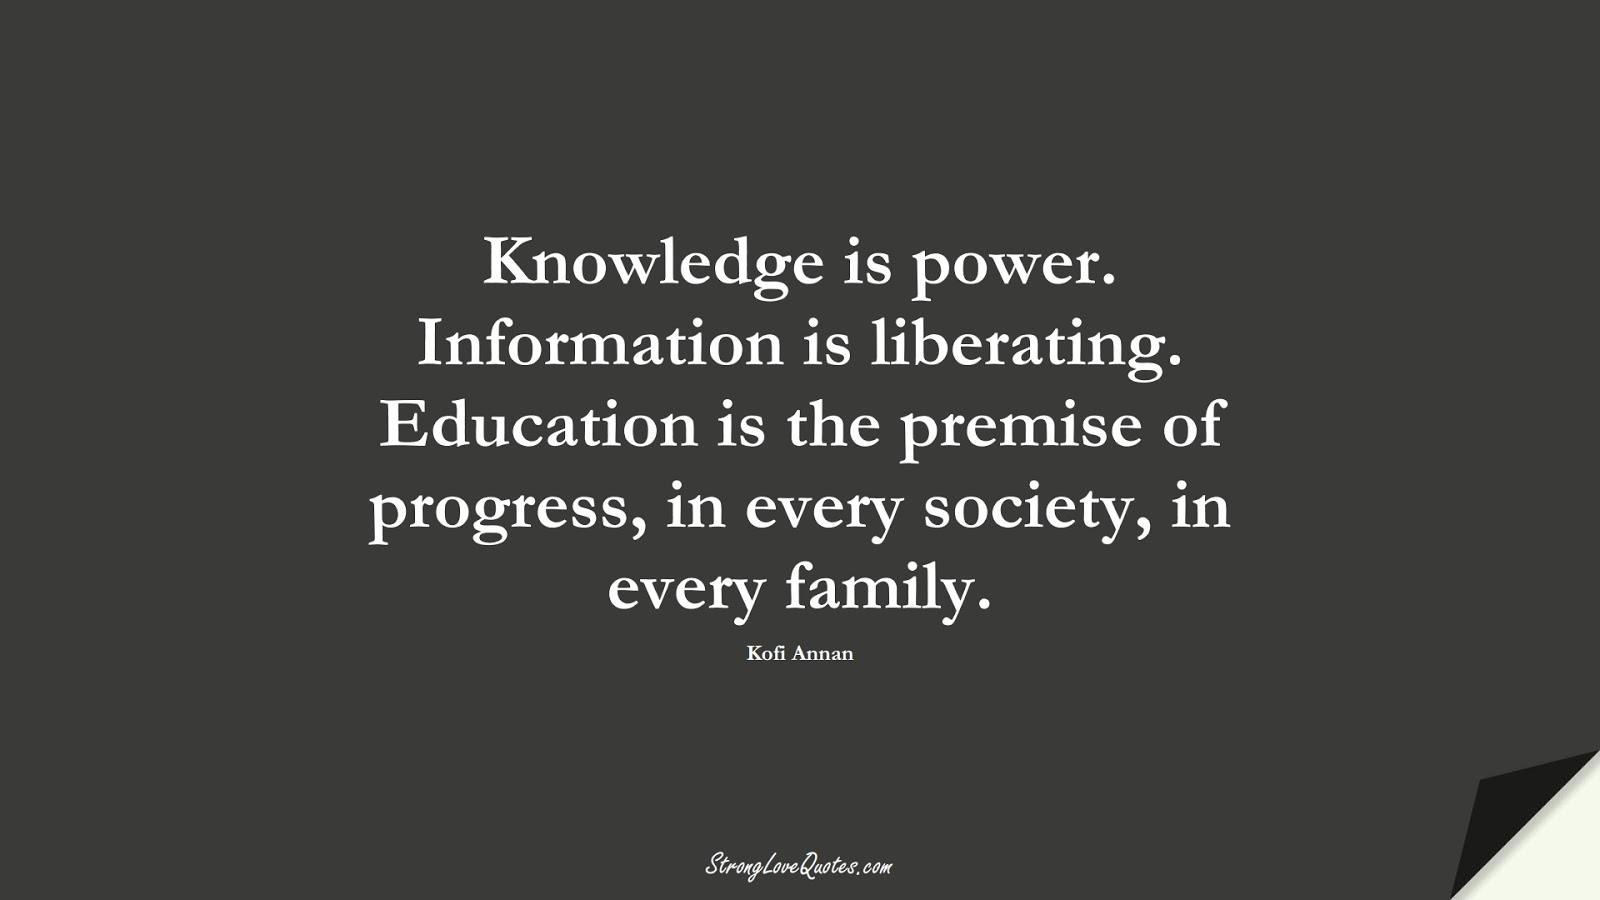 Knowledge is power. Information is liberating. Education is the premise of progress, in every society, in every family. (Kofi Annan);  #KnowledgeQuotes